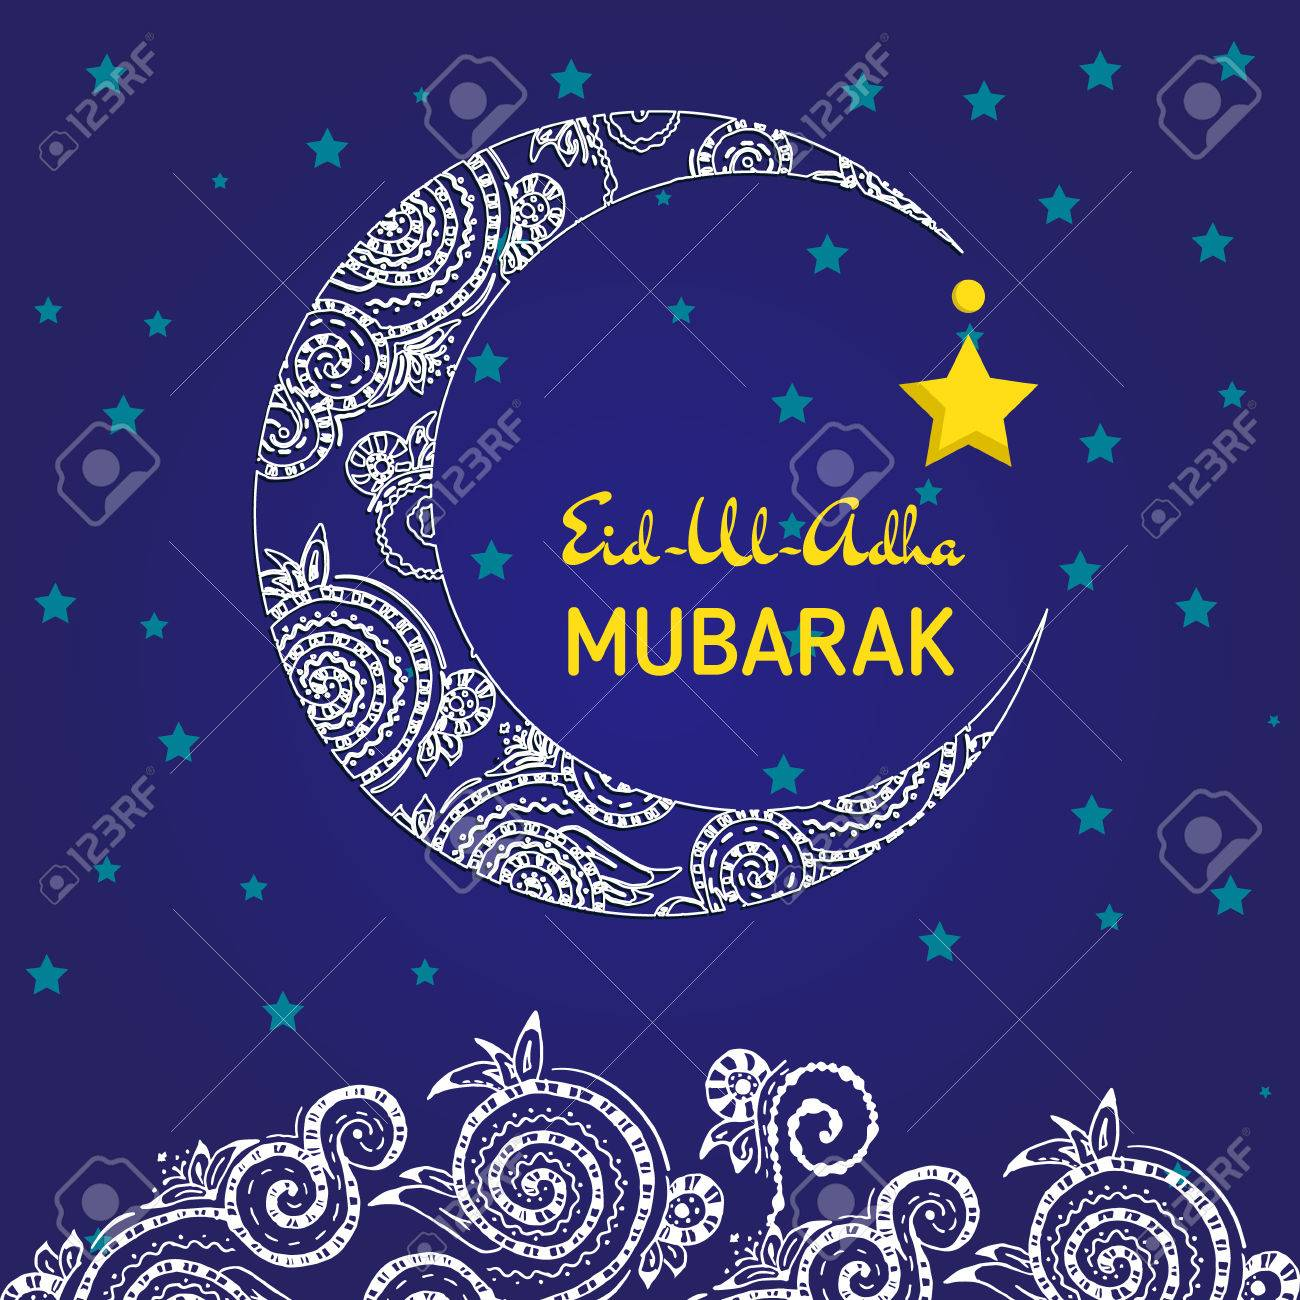 Crescent Moon Decorated With For Muslim Community Festival Eid Al Fitr Mubarak Greeting Card Template